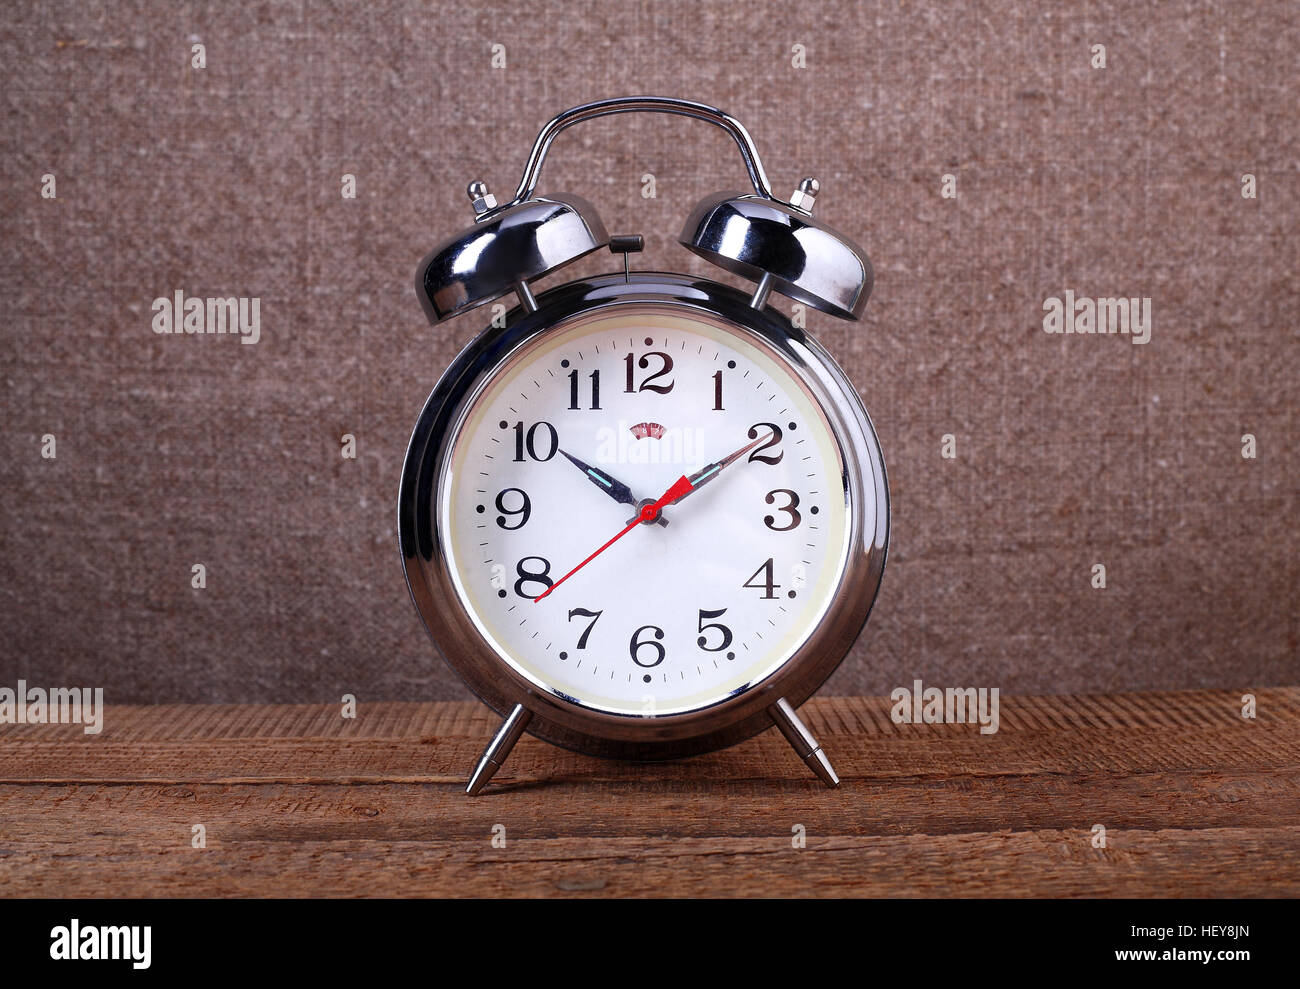 Clock - Vintage old alarm clock on sackings and a wooden background. Stock Photo